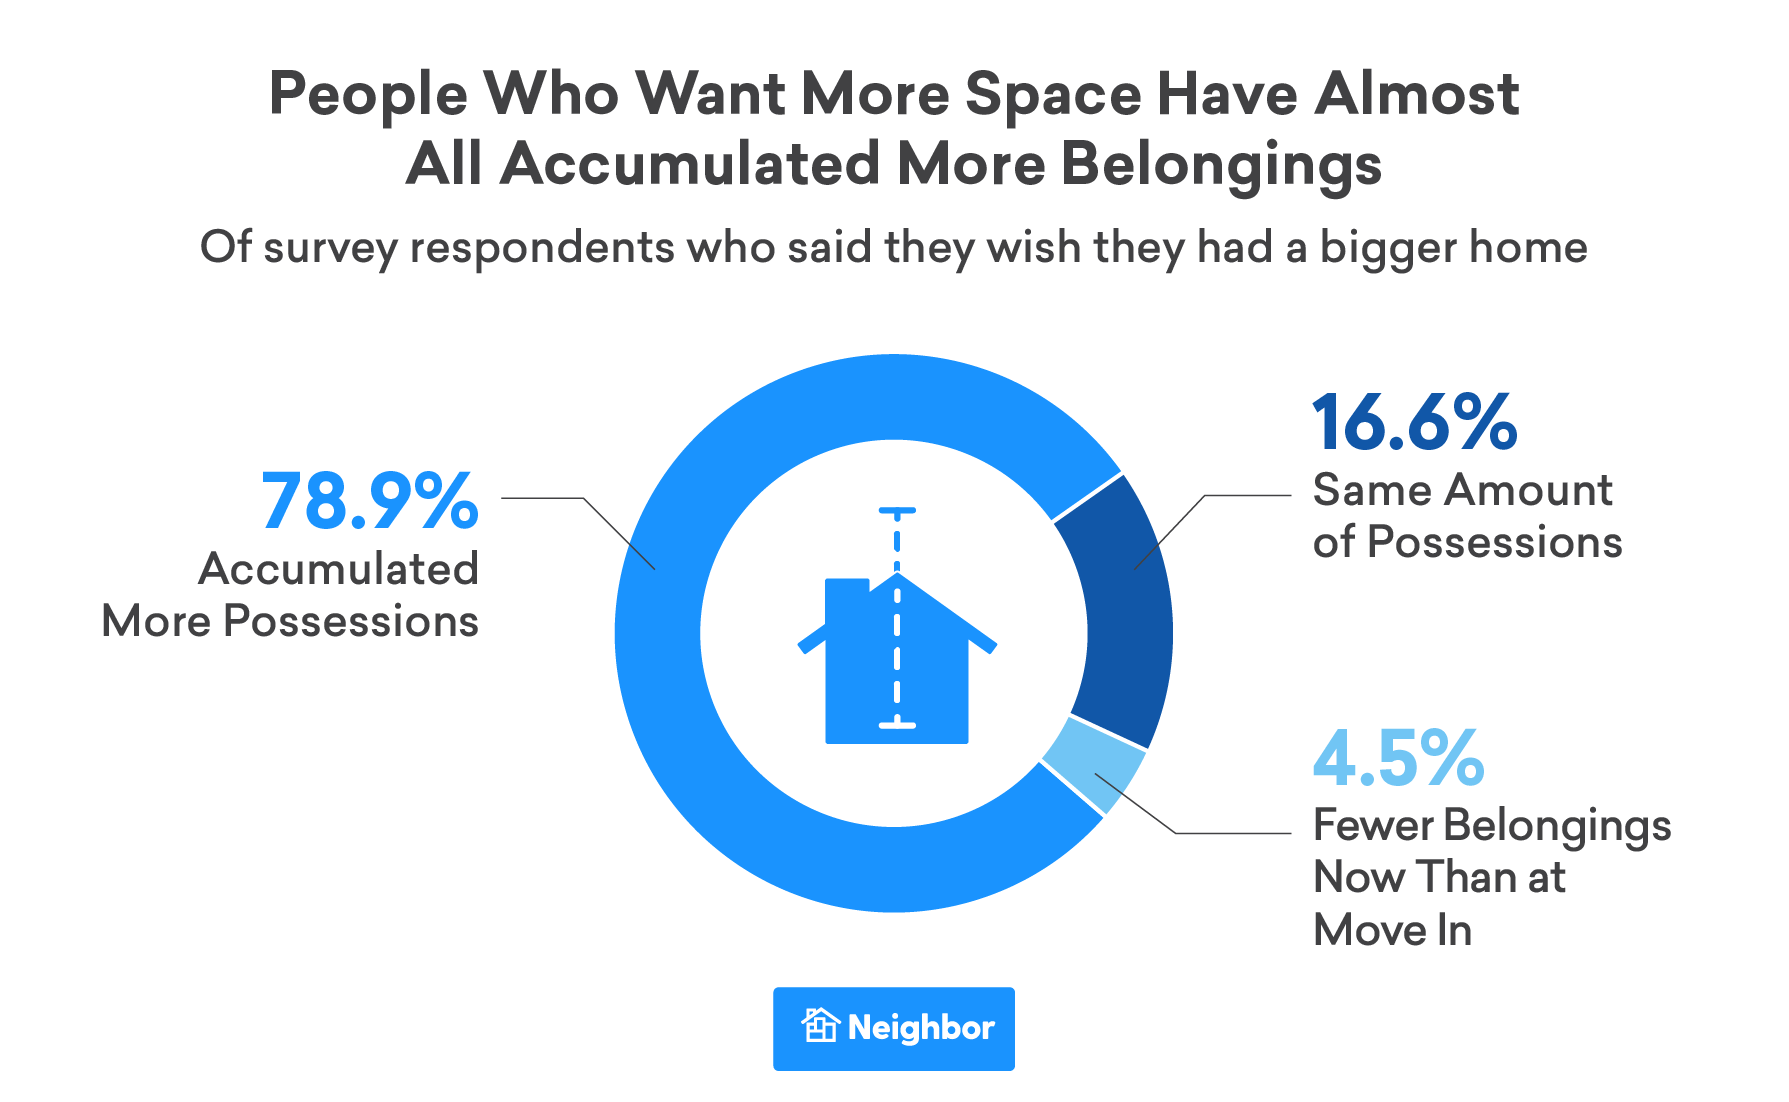 People Who Want More Space Have Almost All Accumulated More Belongings